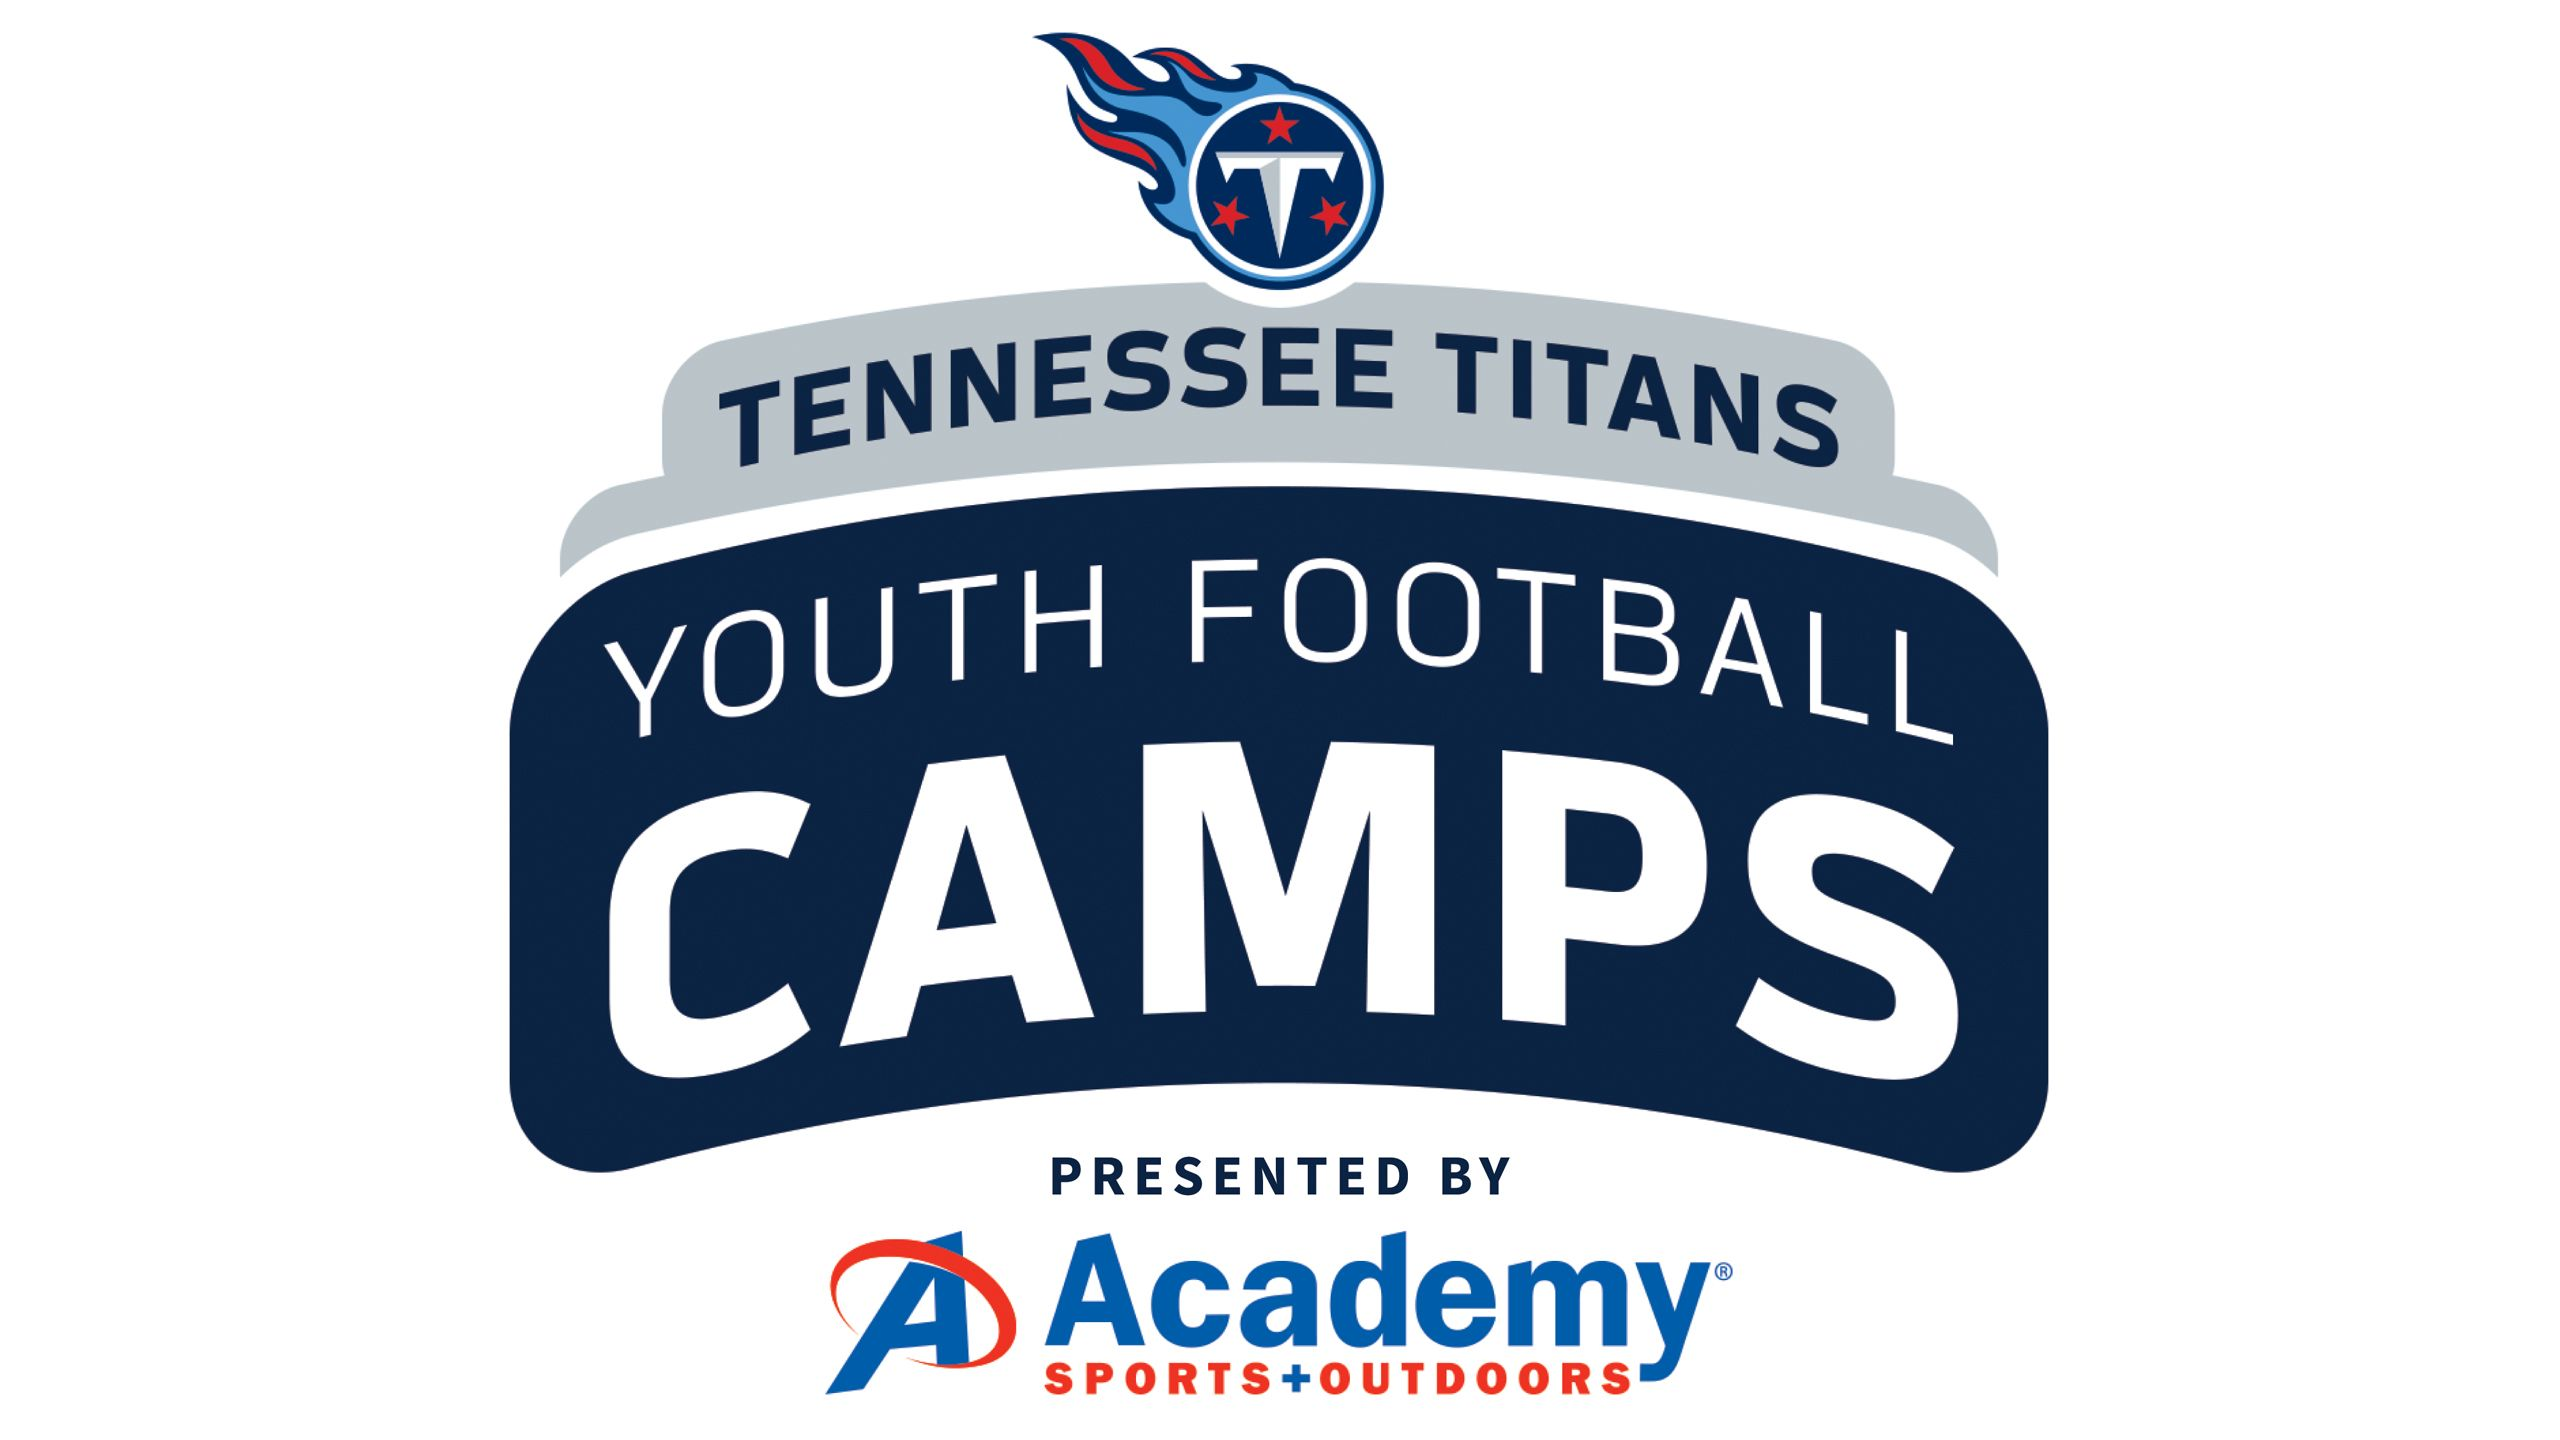 Titans Youth Football Camps